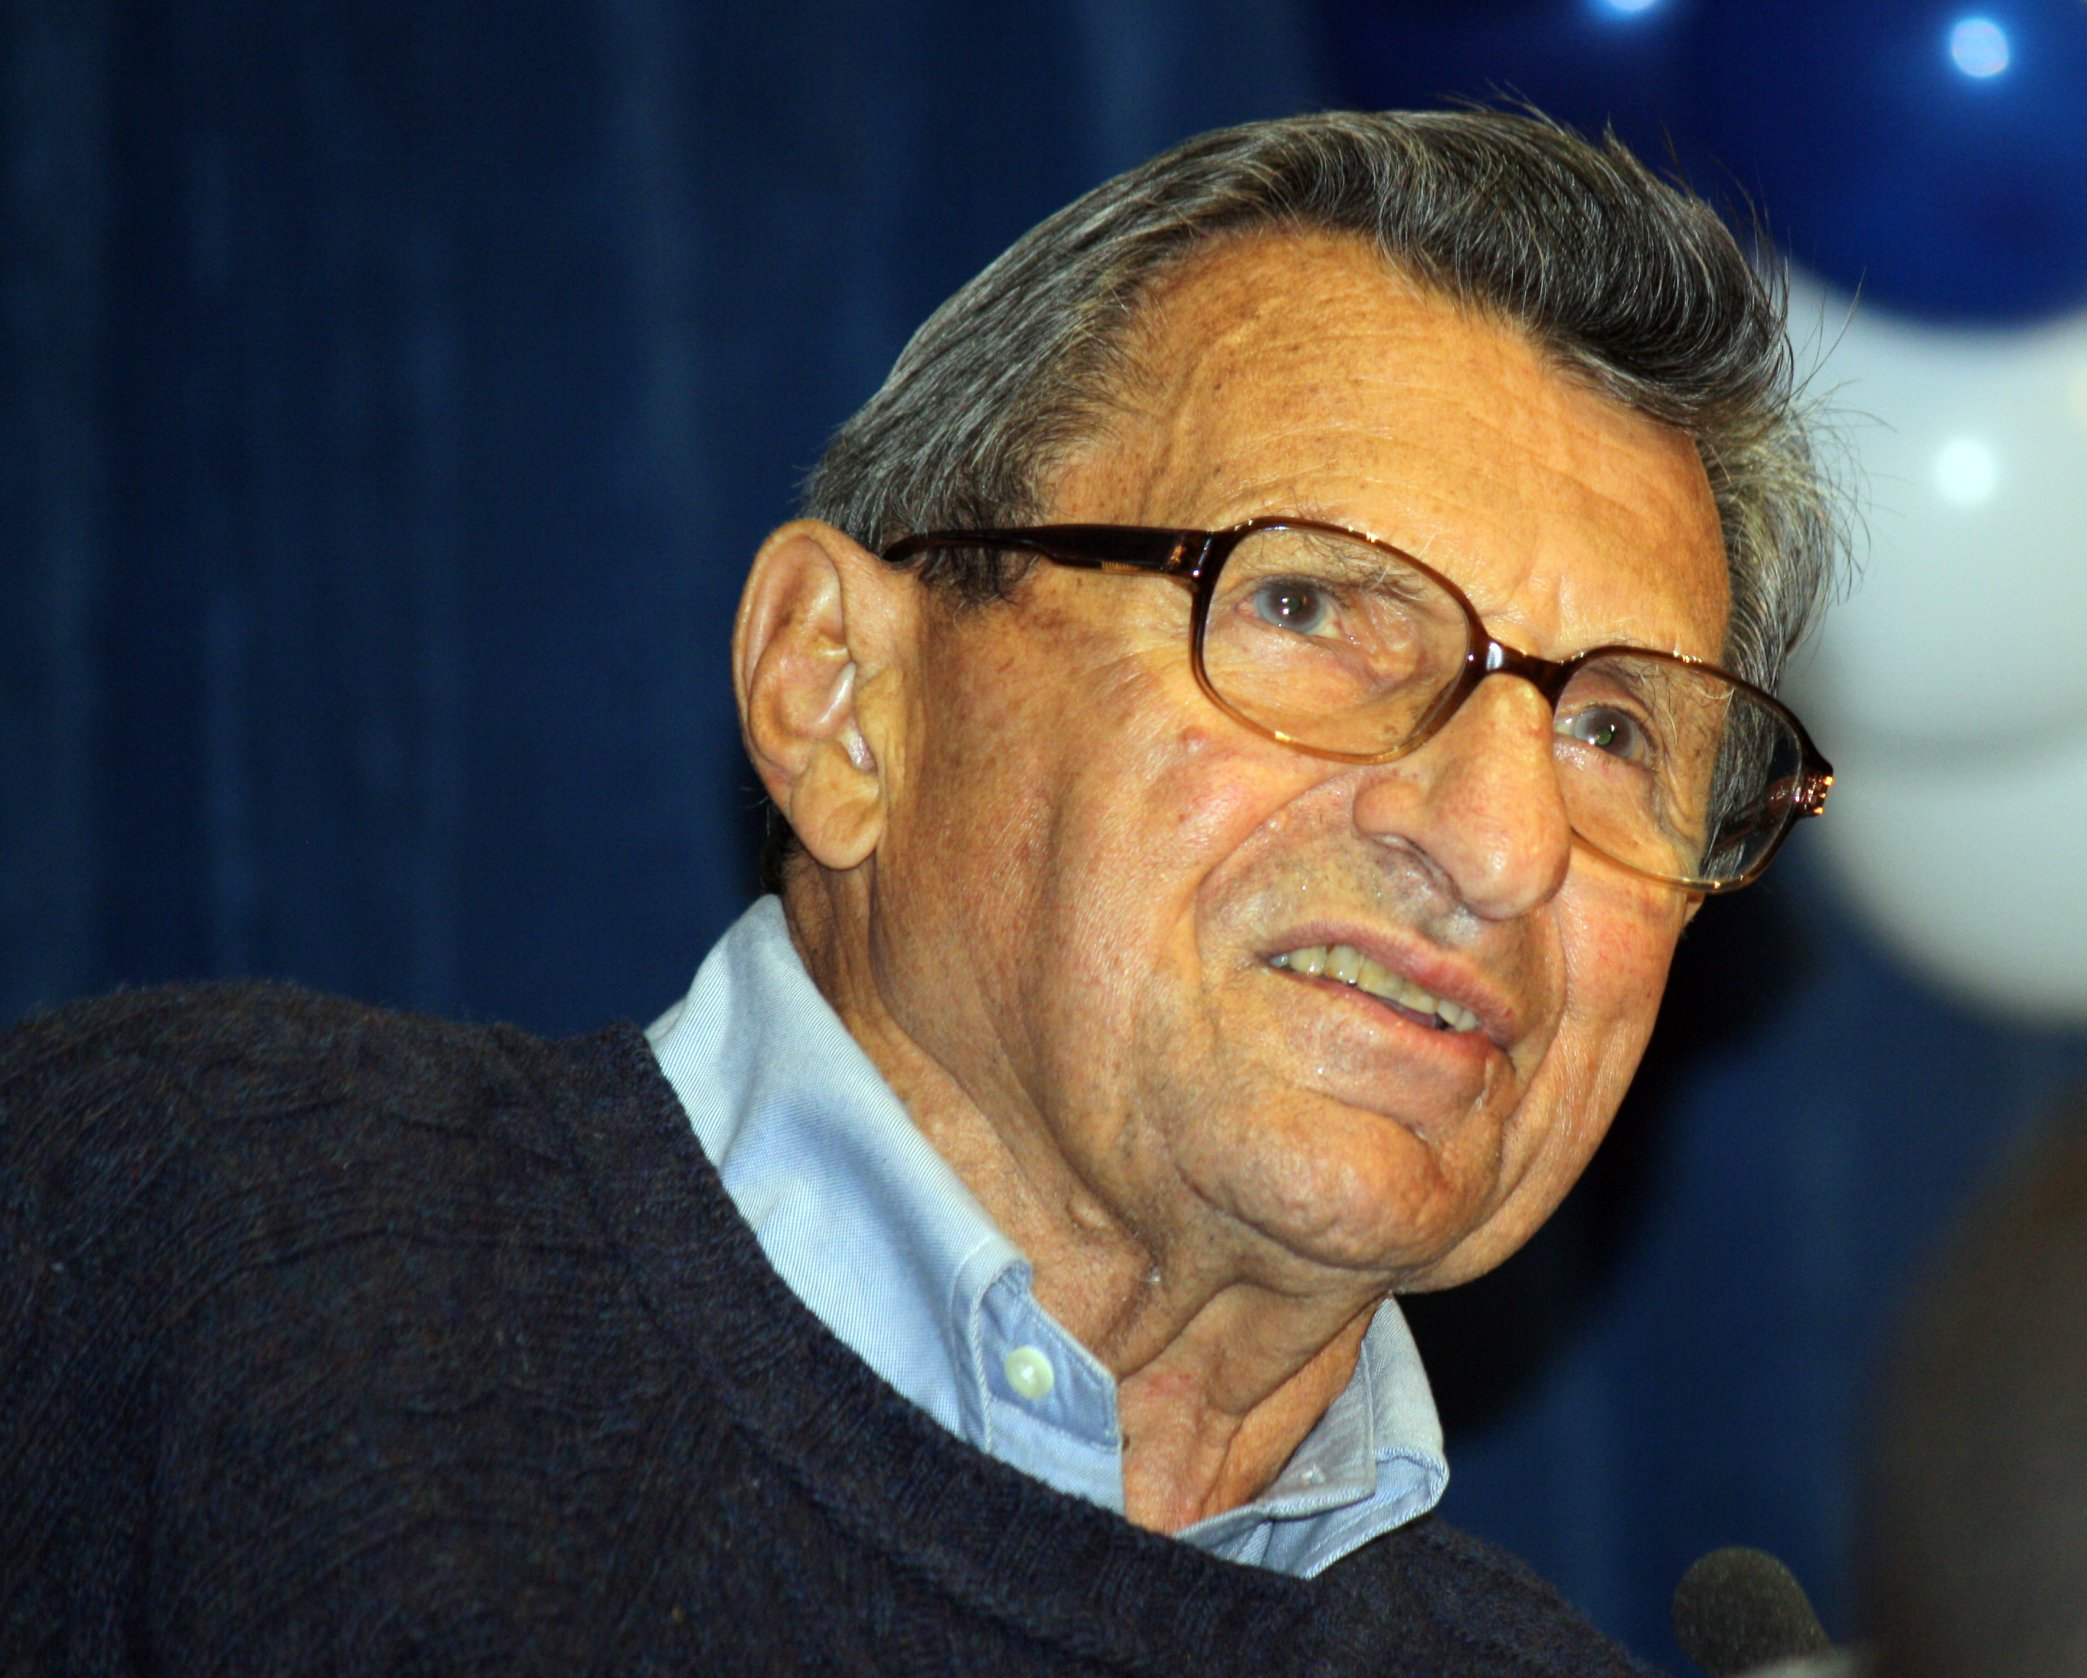 paterno gay personals The report asserts that these emails demonstrate that in 1998 paterno knew of the investigation of sandusky, and followed it closely  the jerry sandusky story.